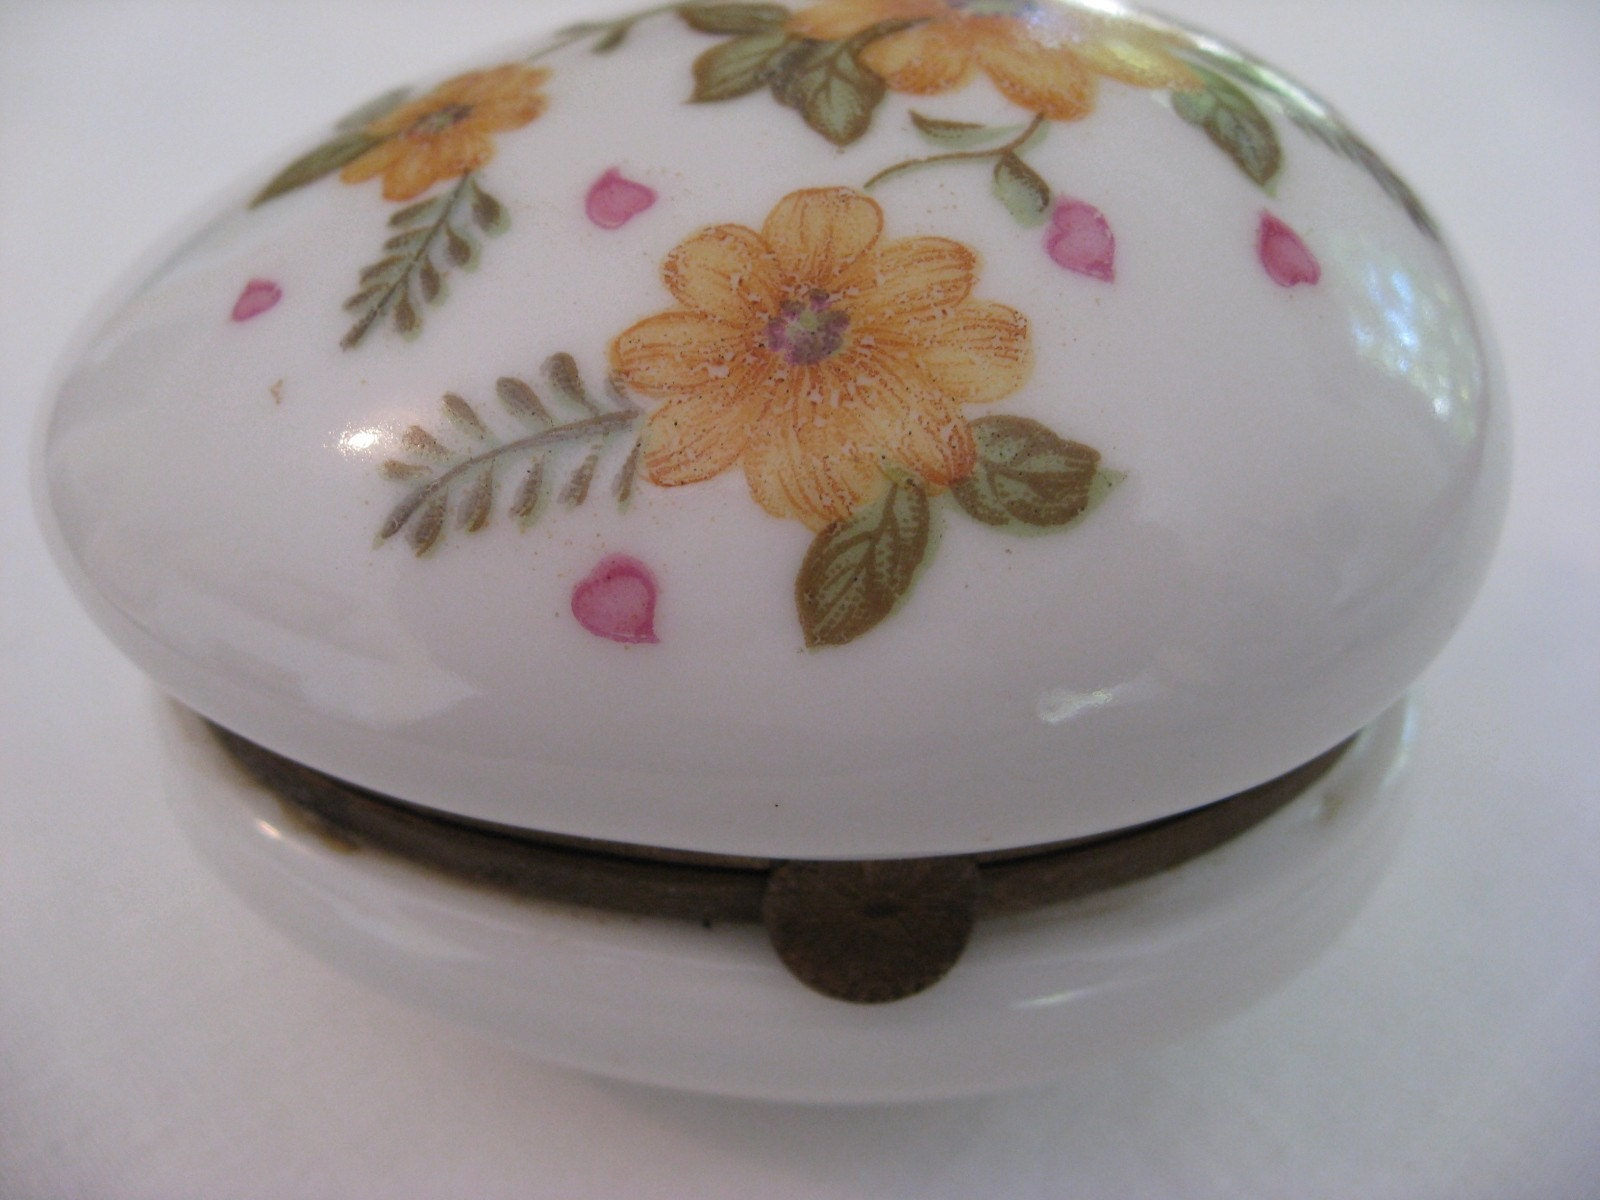 Vintage Lefton Trinket Box - Hinged Porcelain Egg Shaped - Japan - Number 55